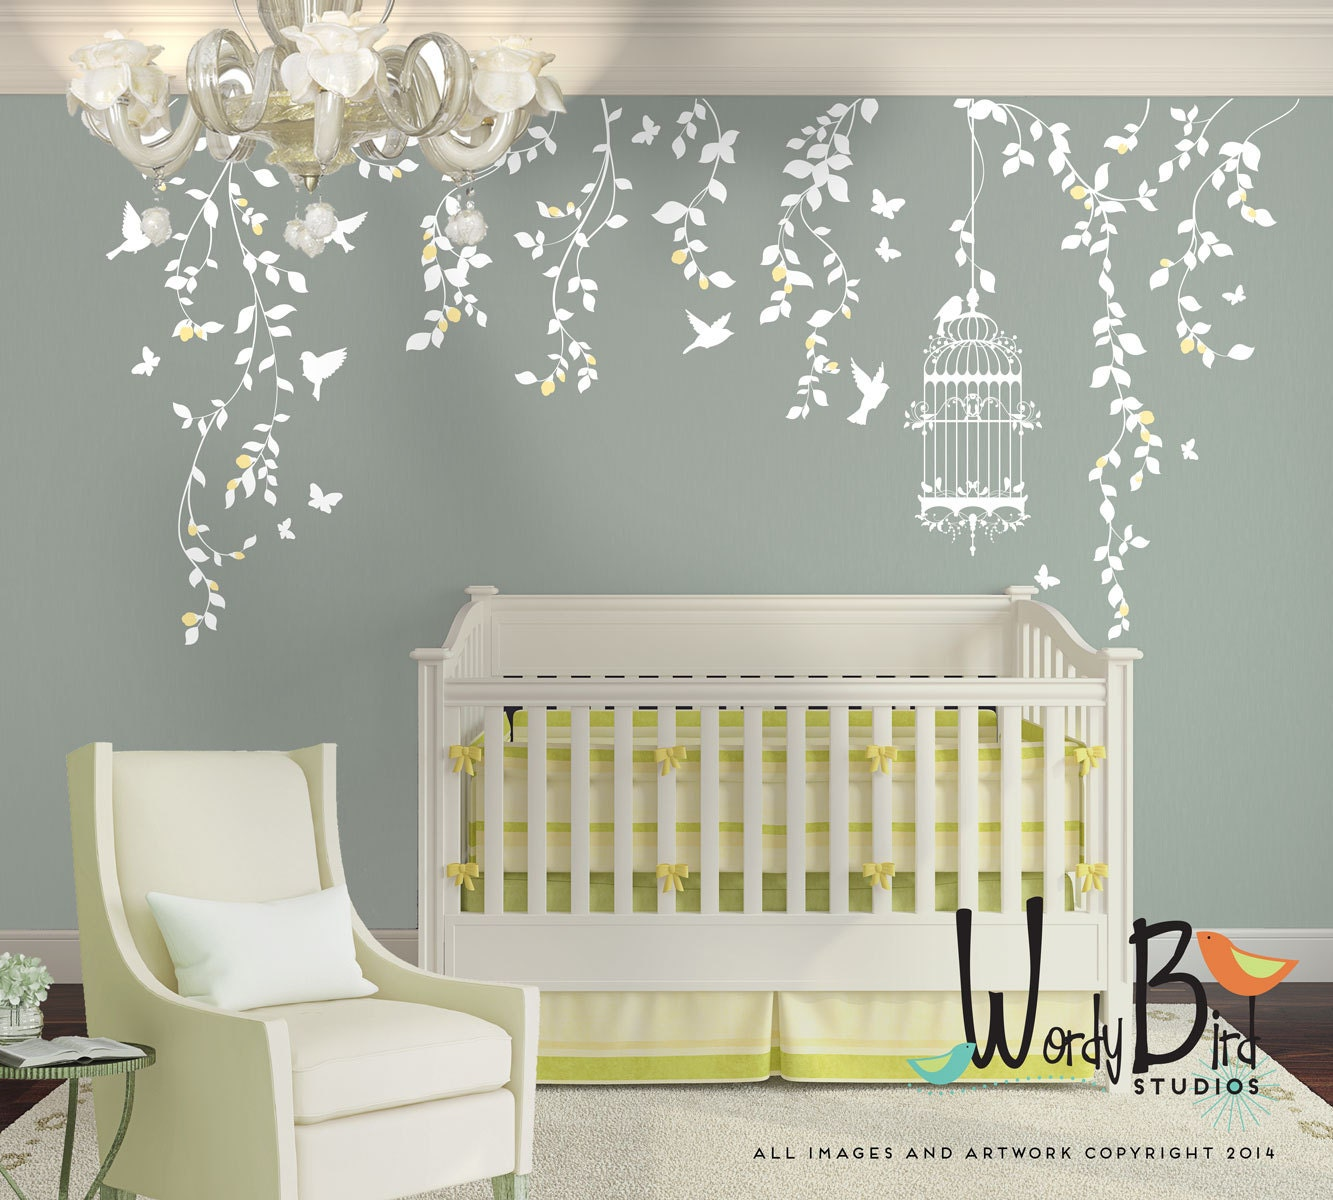 Beau Description. Beautiful And Intricate Nursery Wall Decal For Your Baby Girl  ...